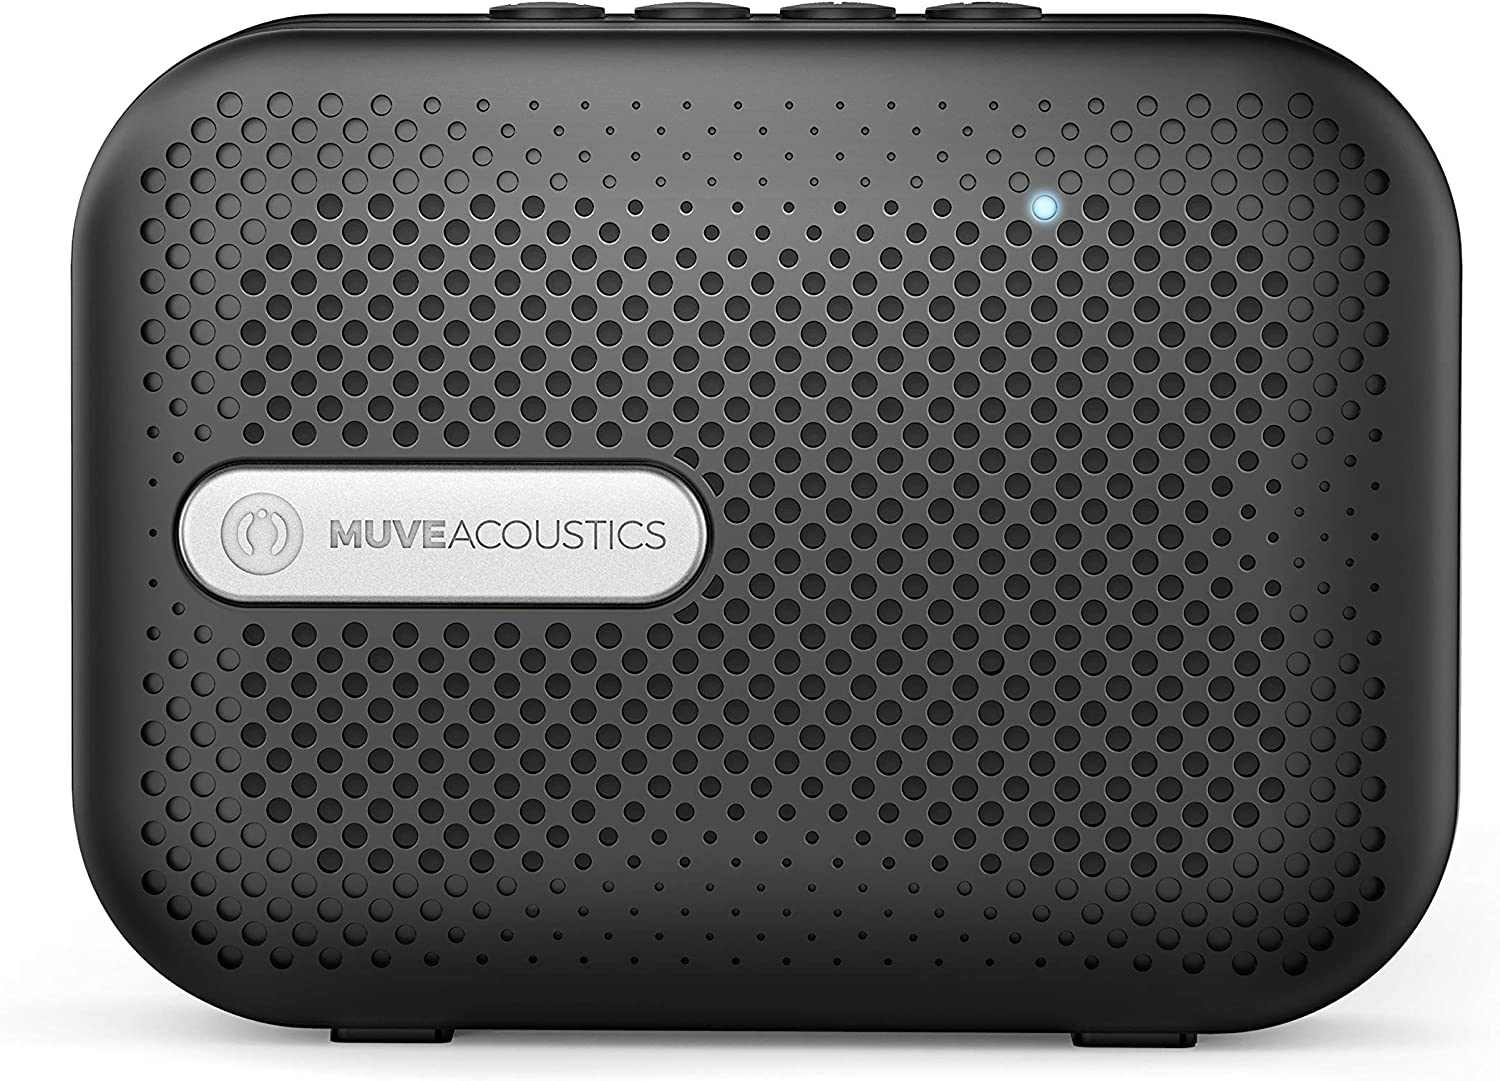 MuveAcoustics Box Wireless Bluetooth Speaker with High Audio Sound & Boosted Bass, Hands Free with Built-in Microphone - Lightweight Portable Speaker & Stereo, Black